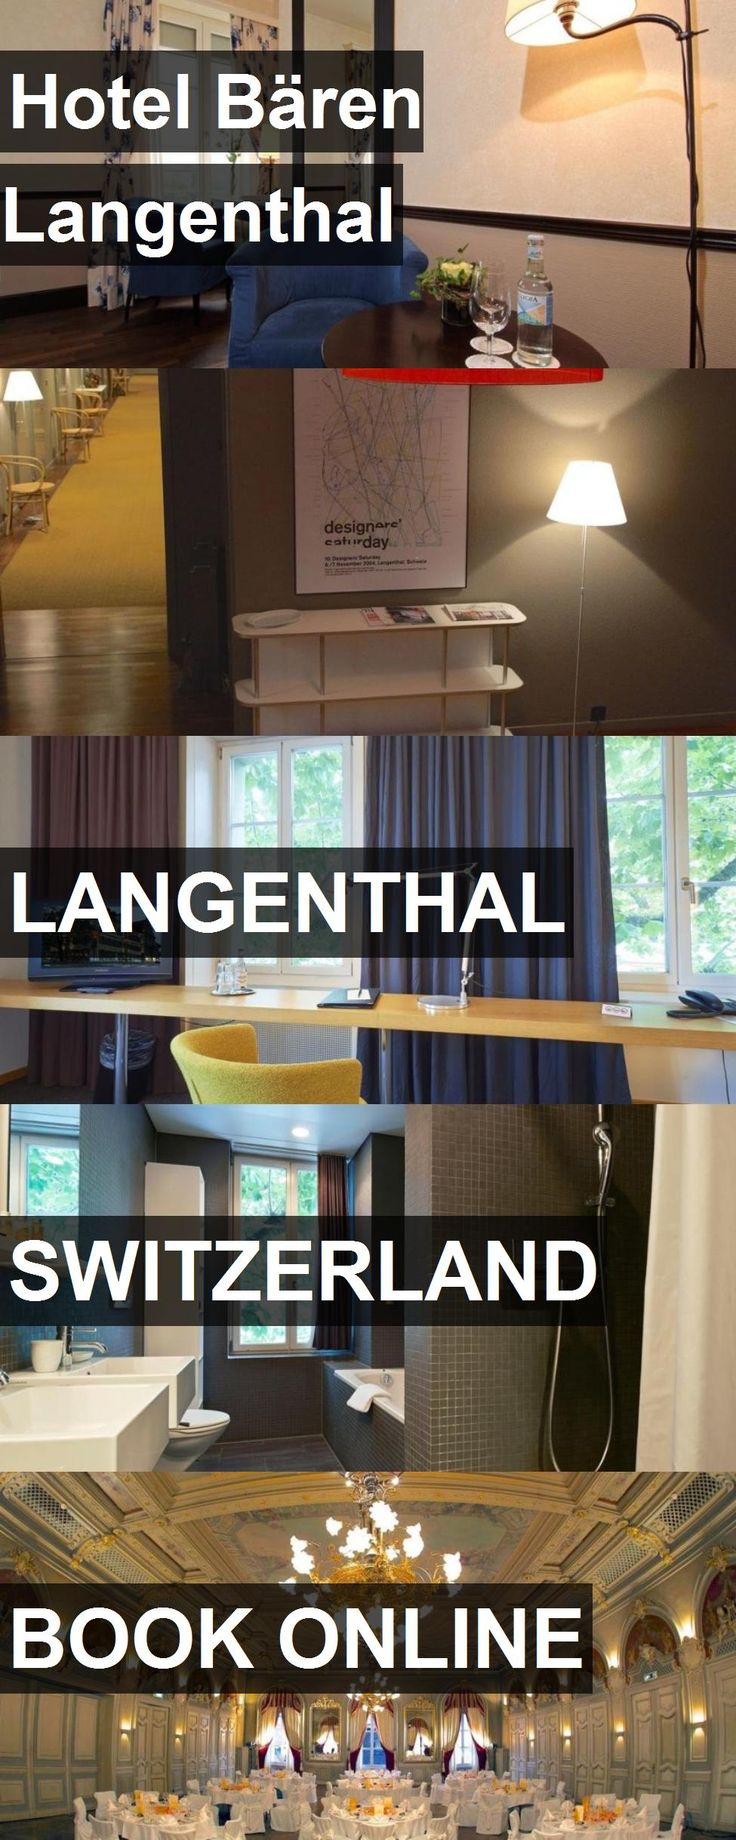 Hotel Bären Langenthal in Langenthal, Switzerland. For more information, photos, reviews and best prices please follow the link. #Switzerland #Langenthal #travel #vacation #hotel